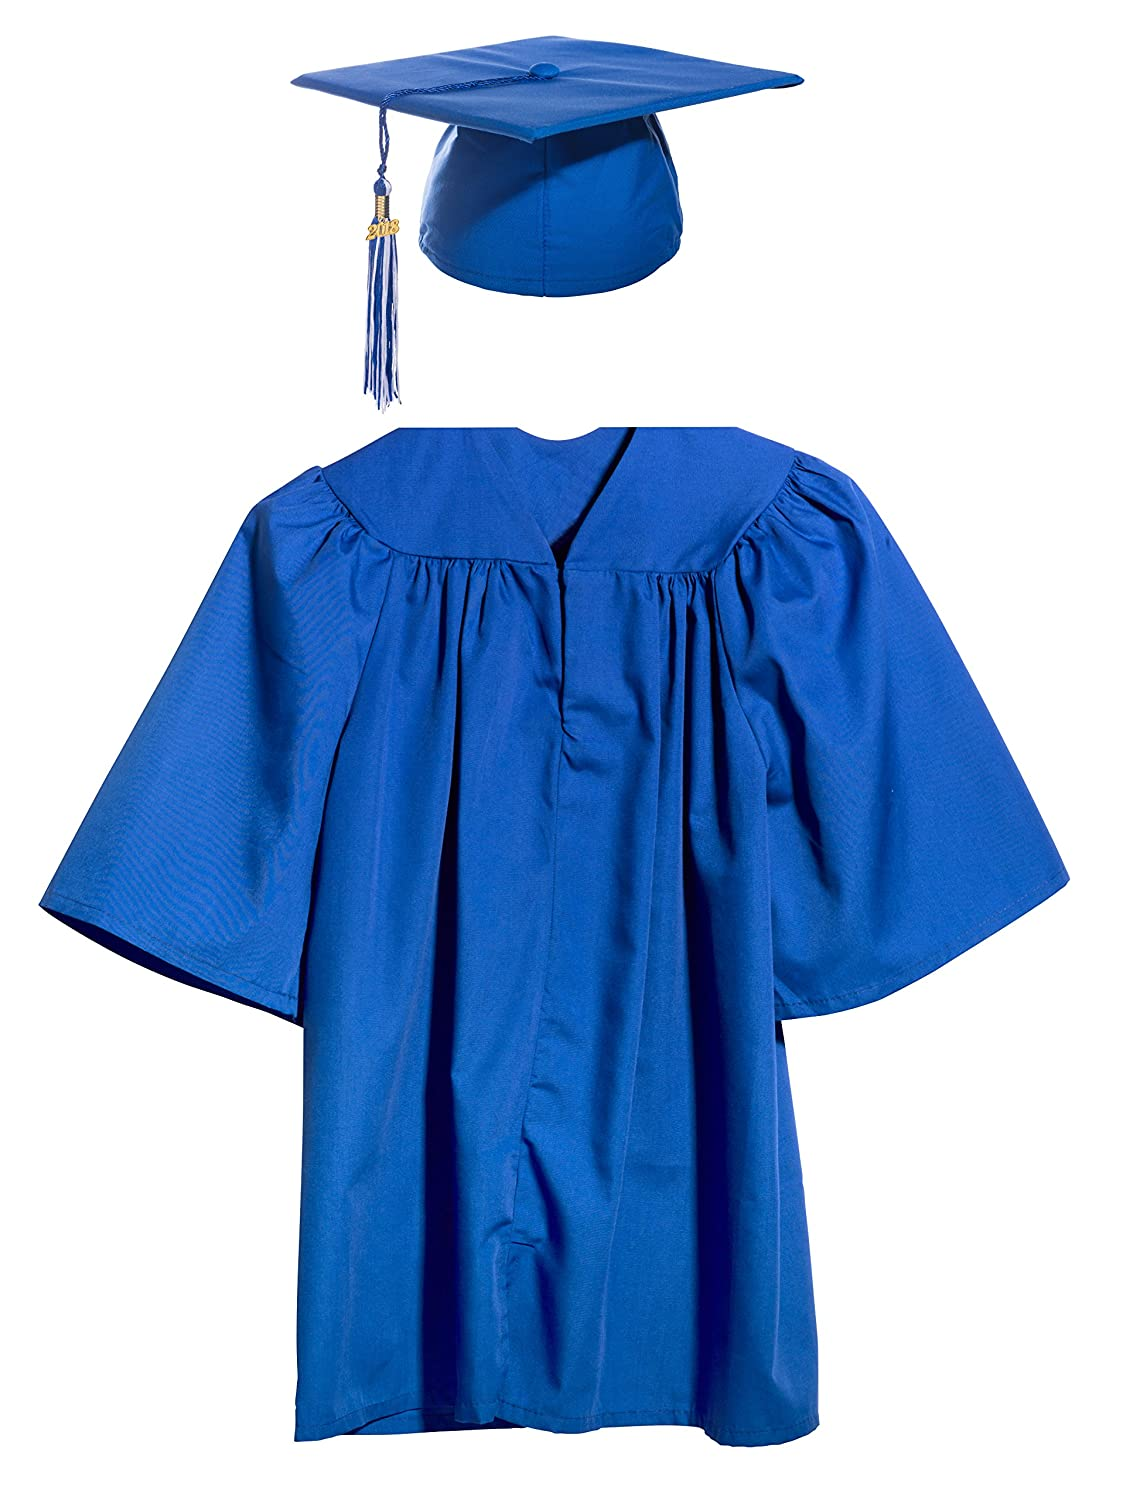 Amazon.com: Preschool and Kindergarten Graduation Cap, Gown, Tassel ...